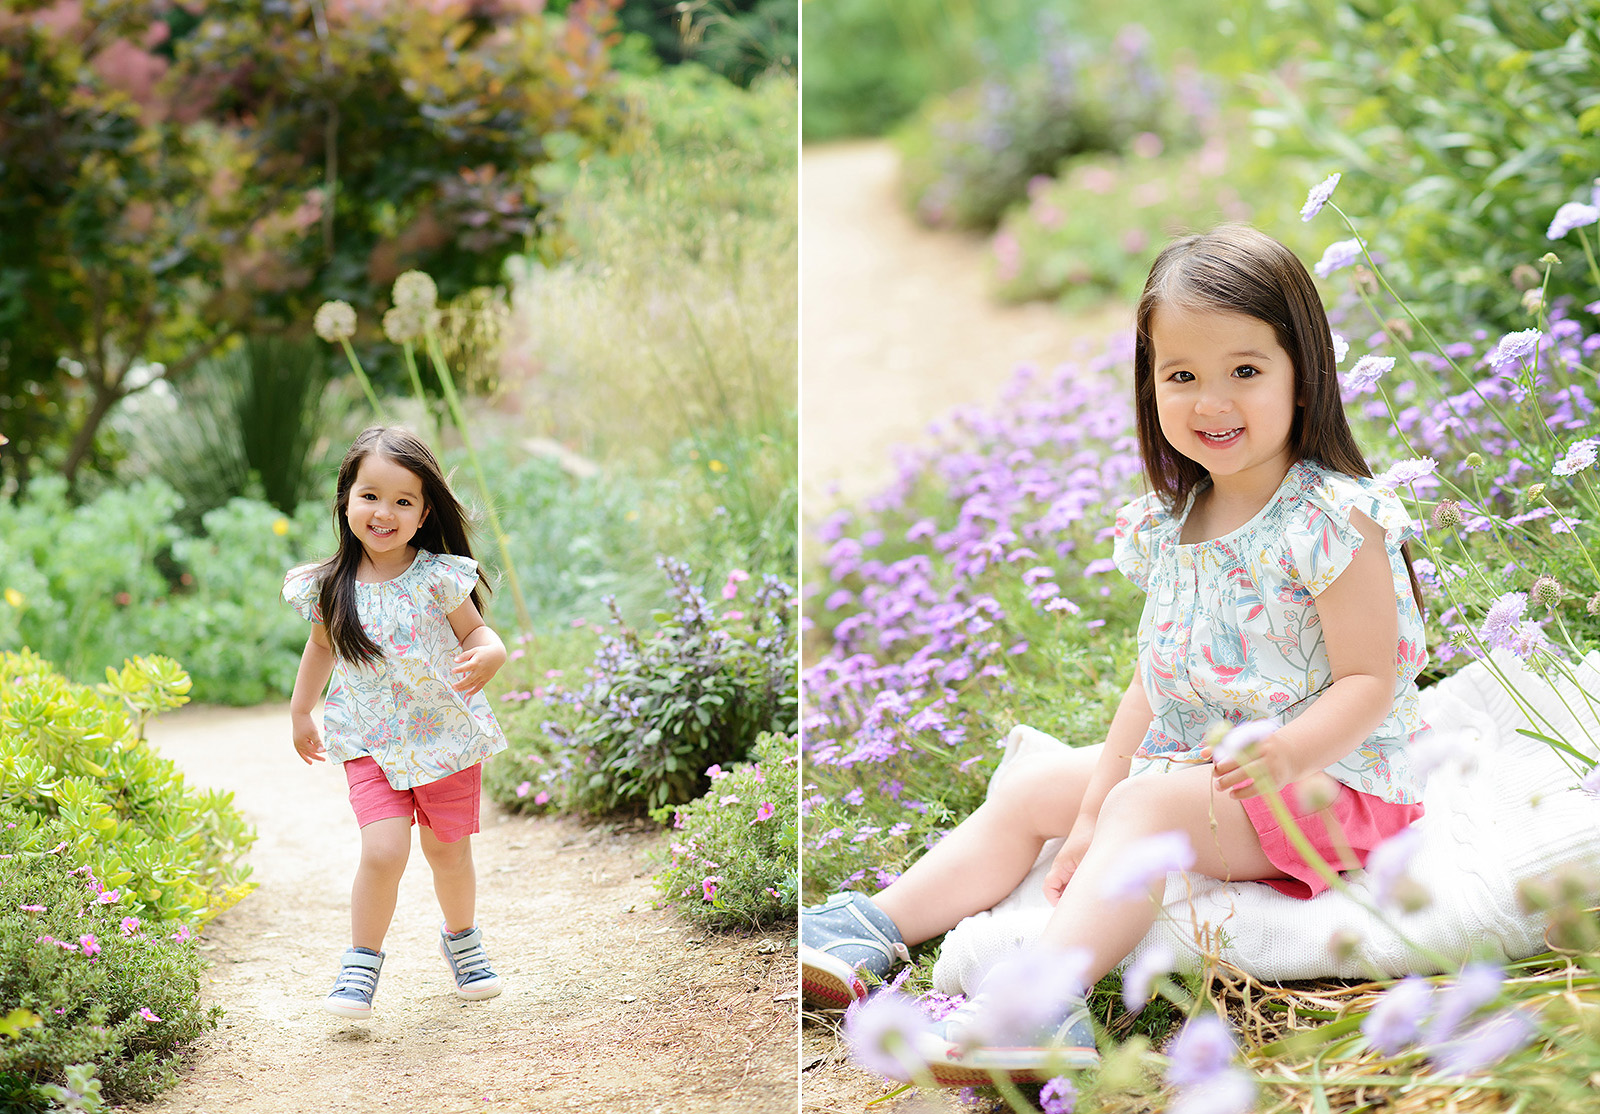 playing in the spring flowers for picture day at davis arboretum